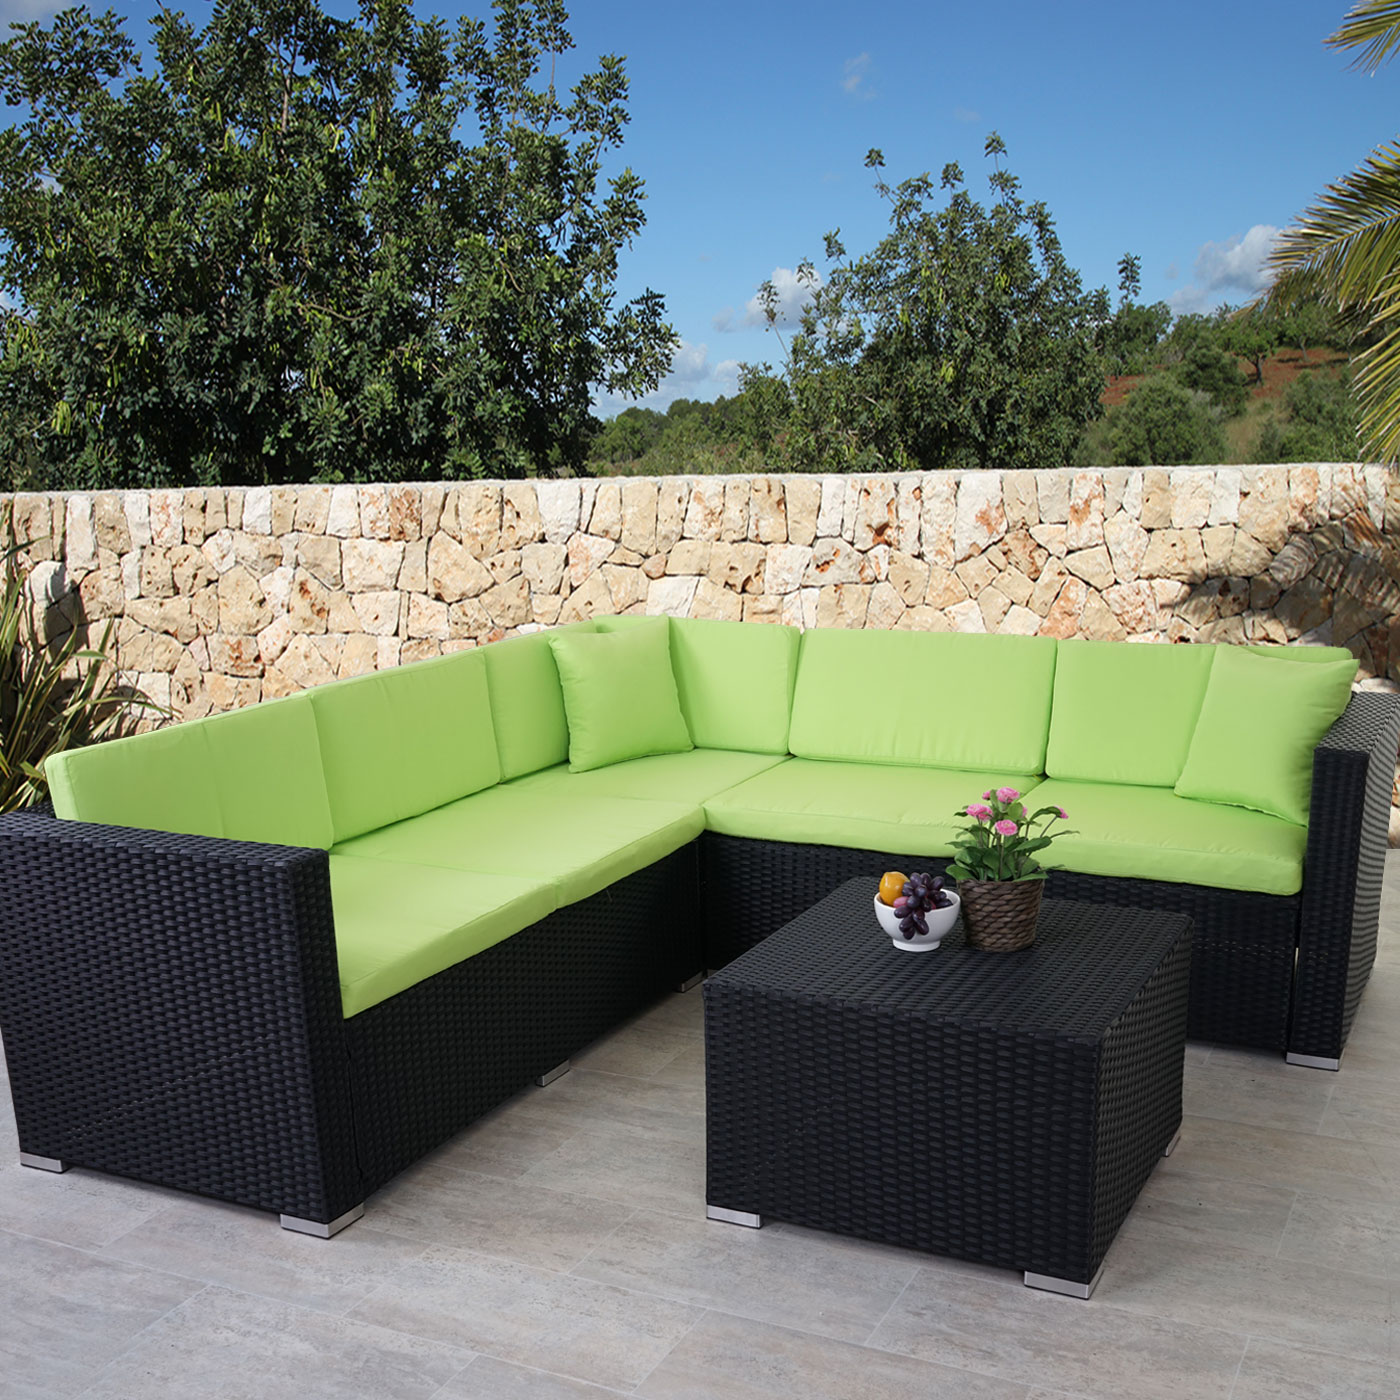 rattan sofa outdoor. Black Bedroom Furniture Sets. Home Design Ideas